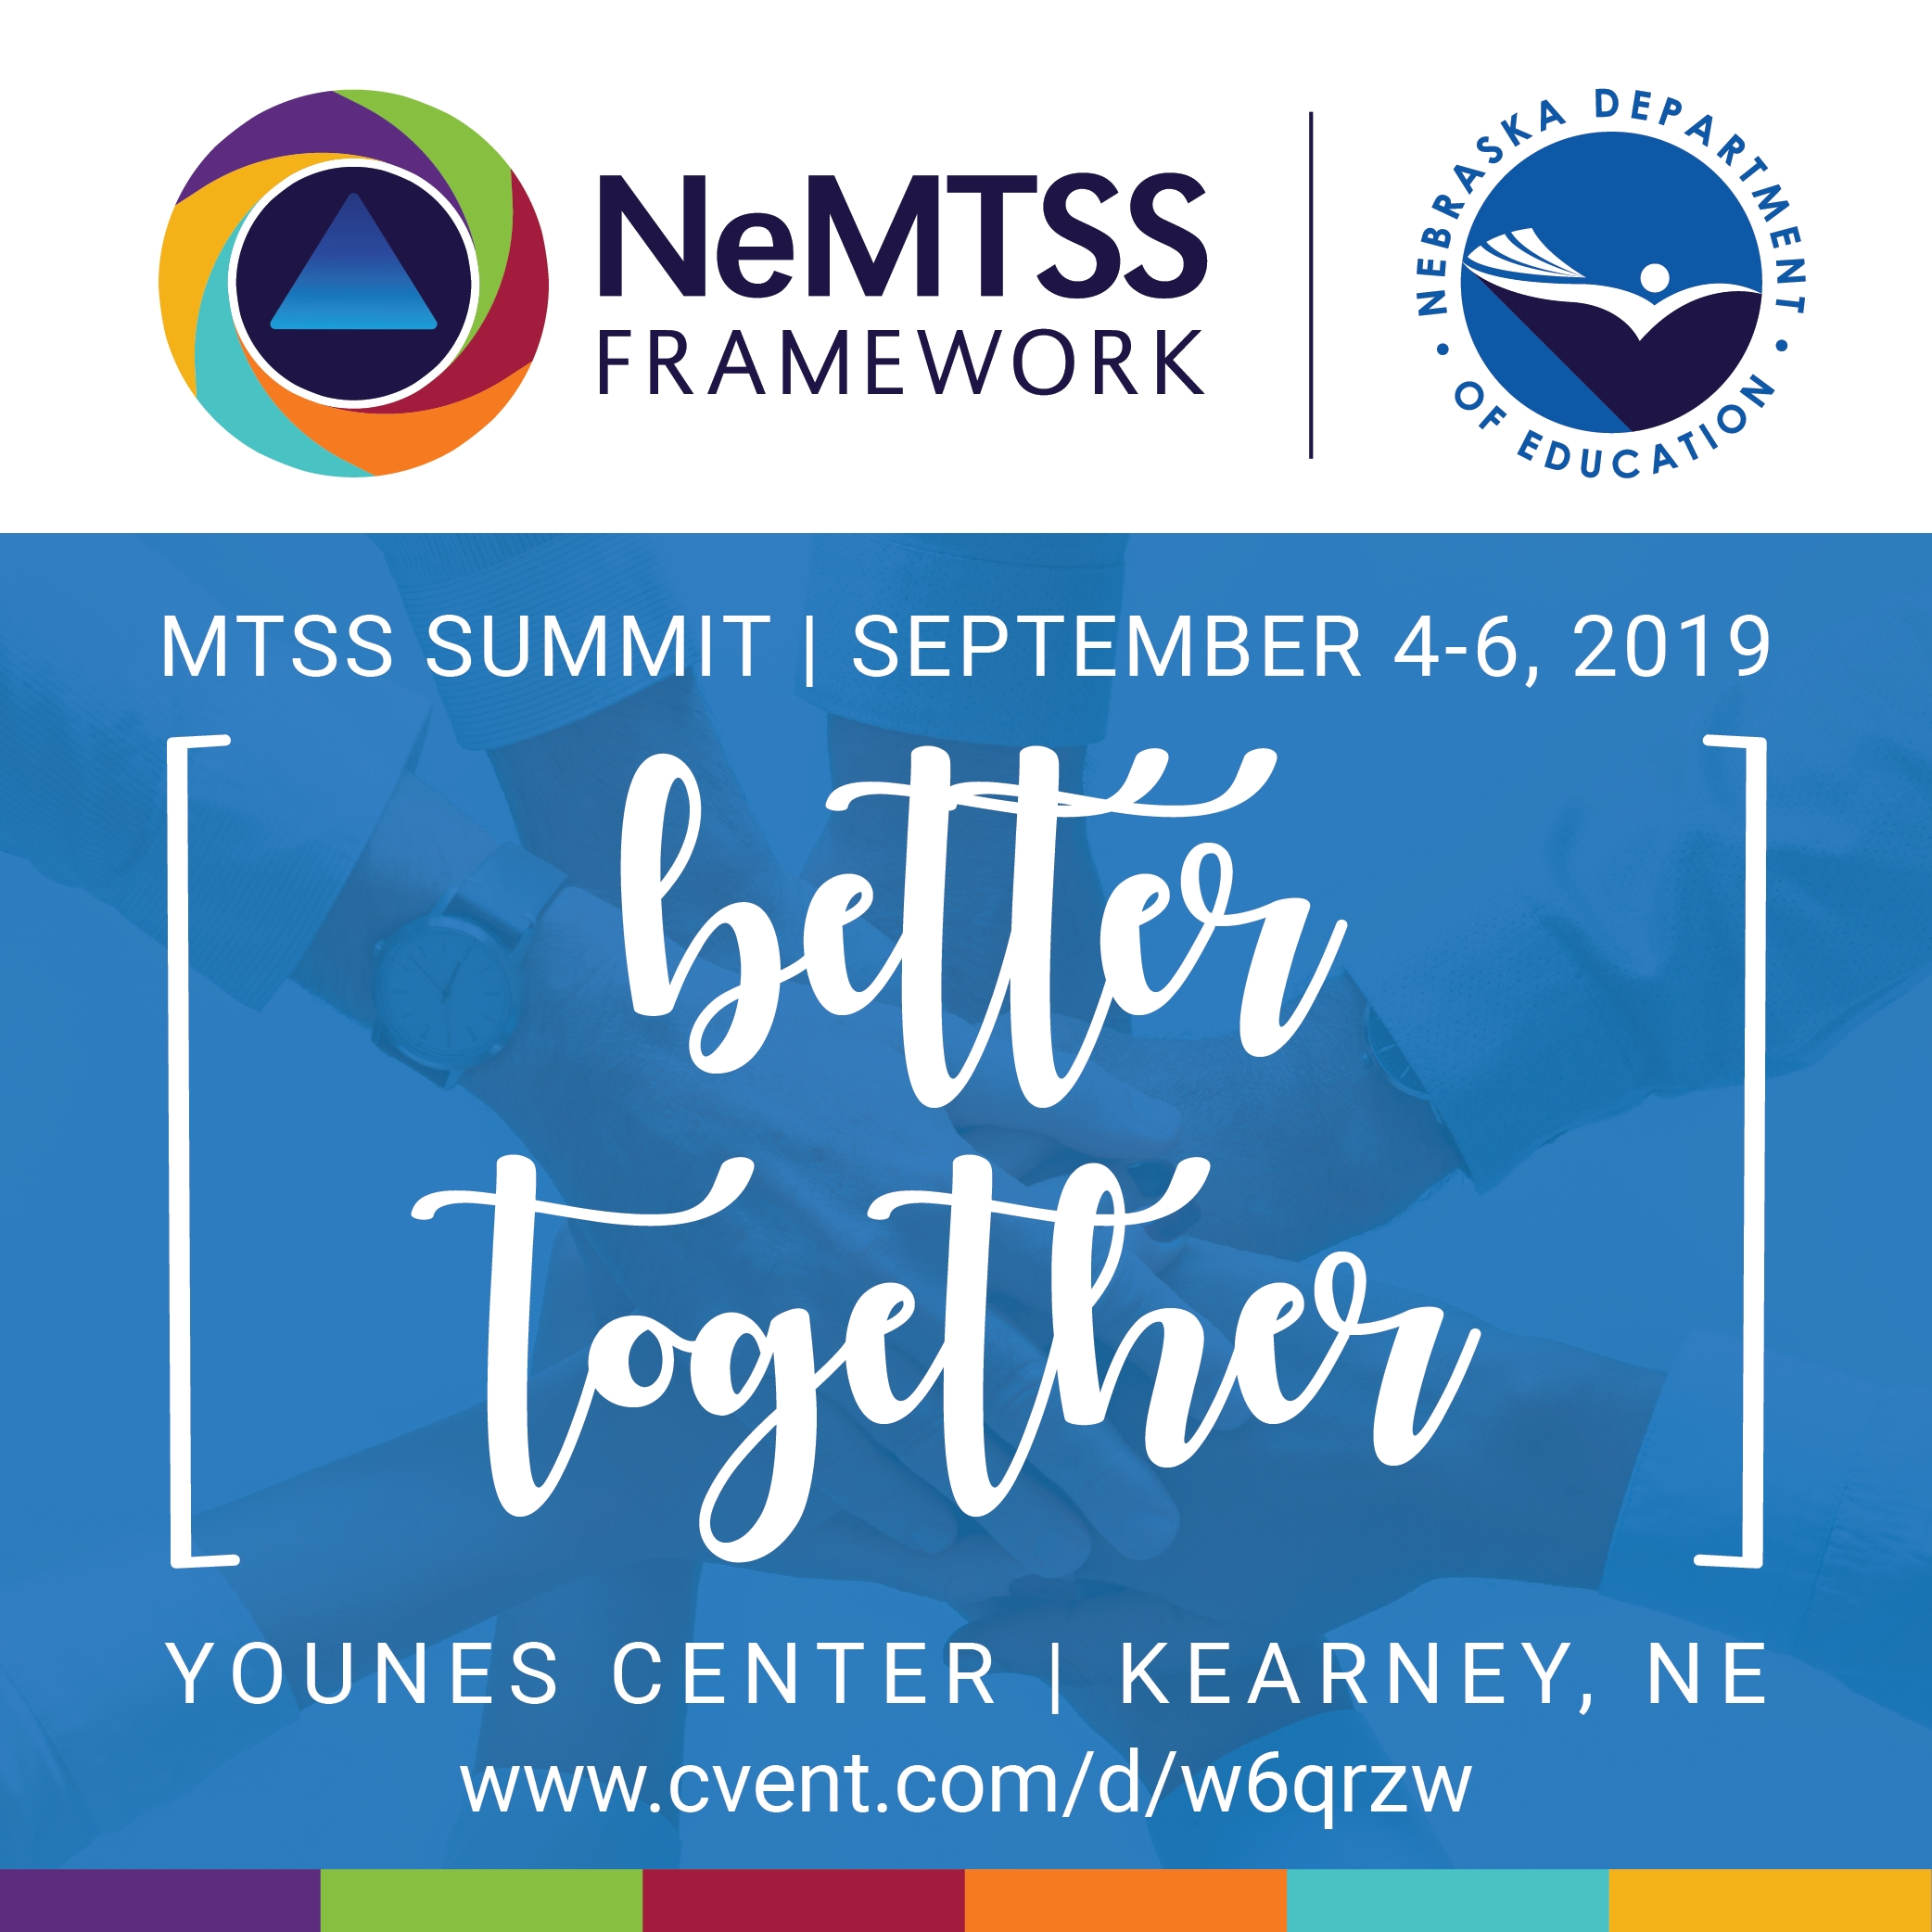 2019 Nebraska MTSS Summit | September 4-6, 2019